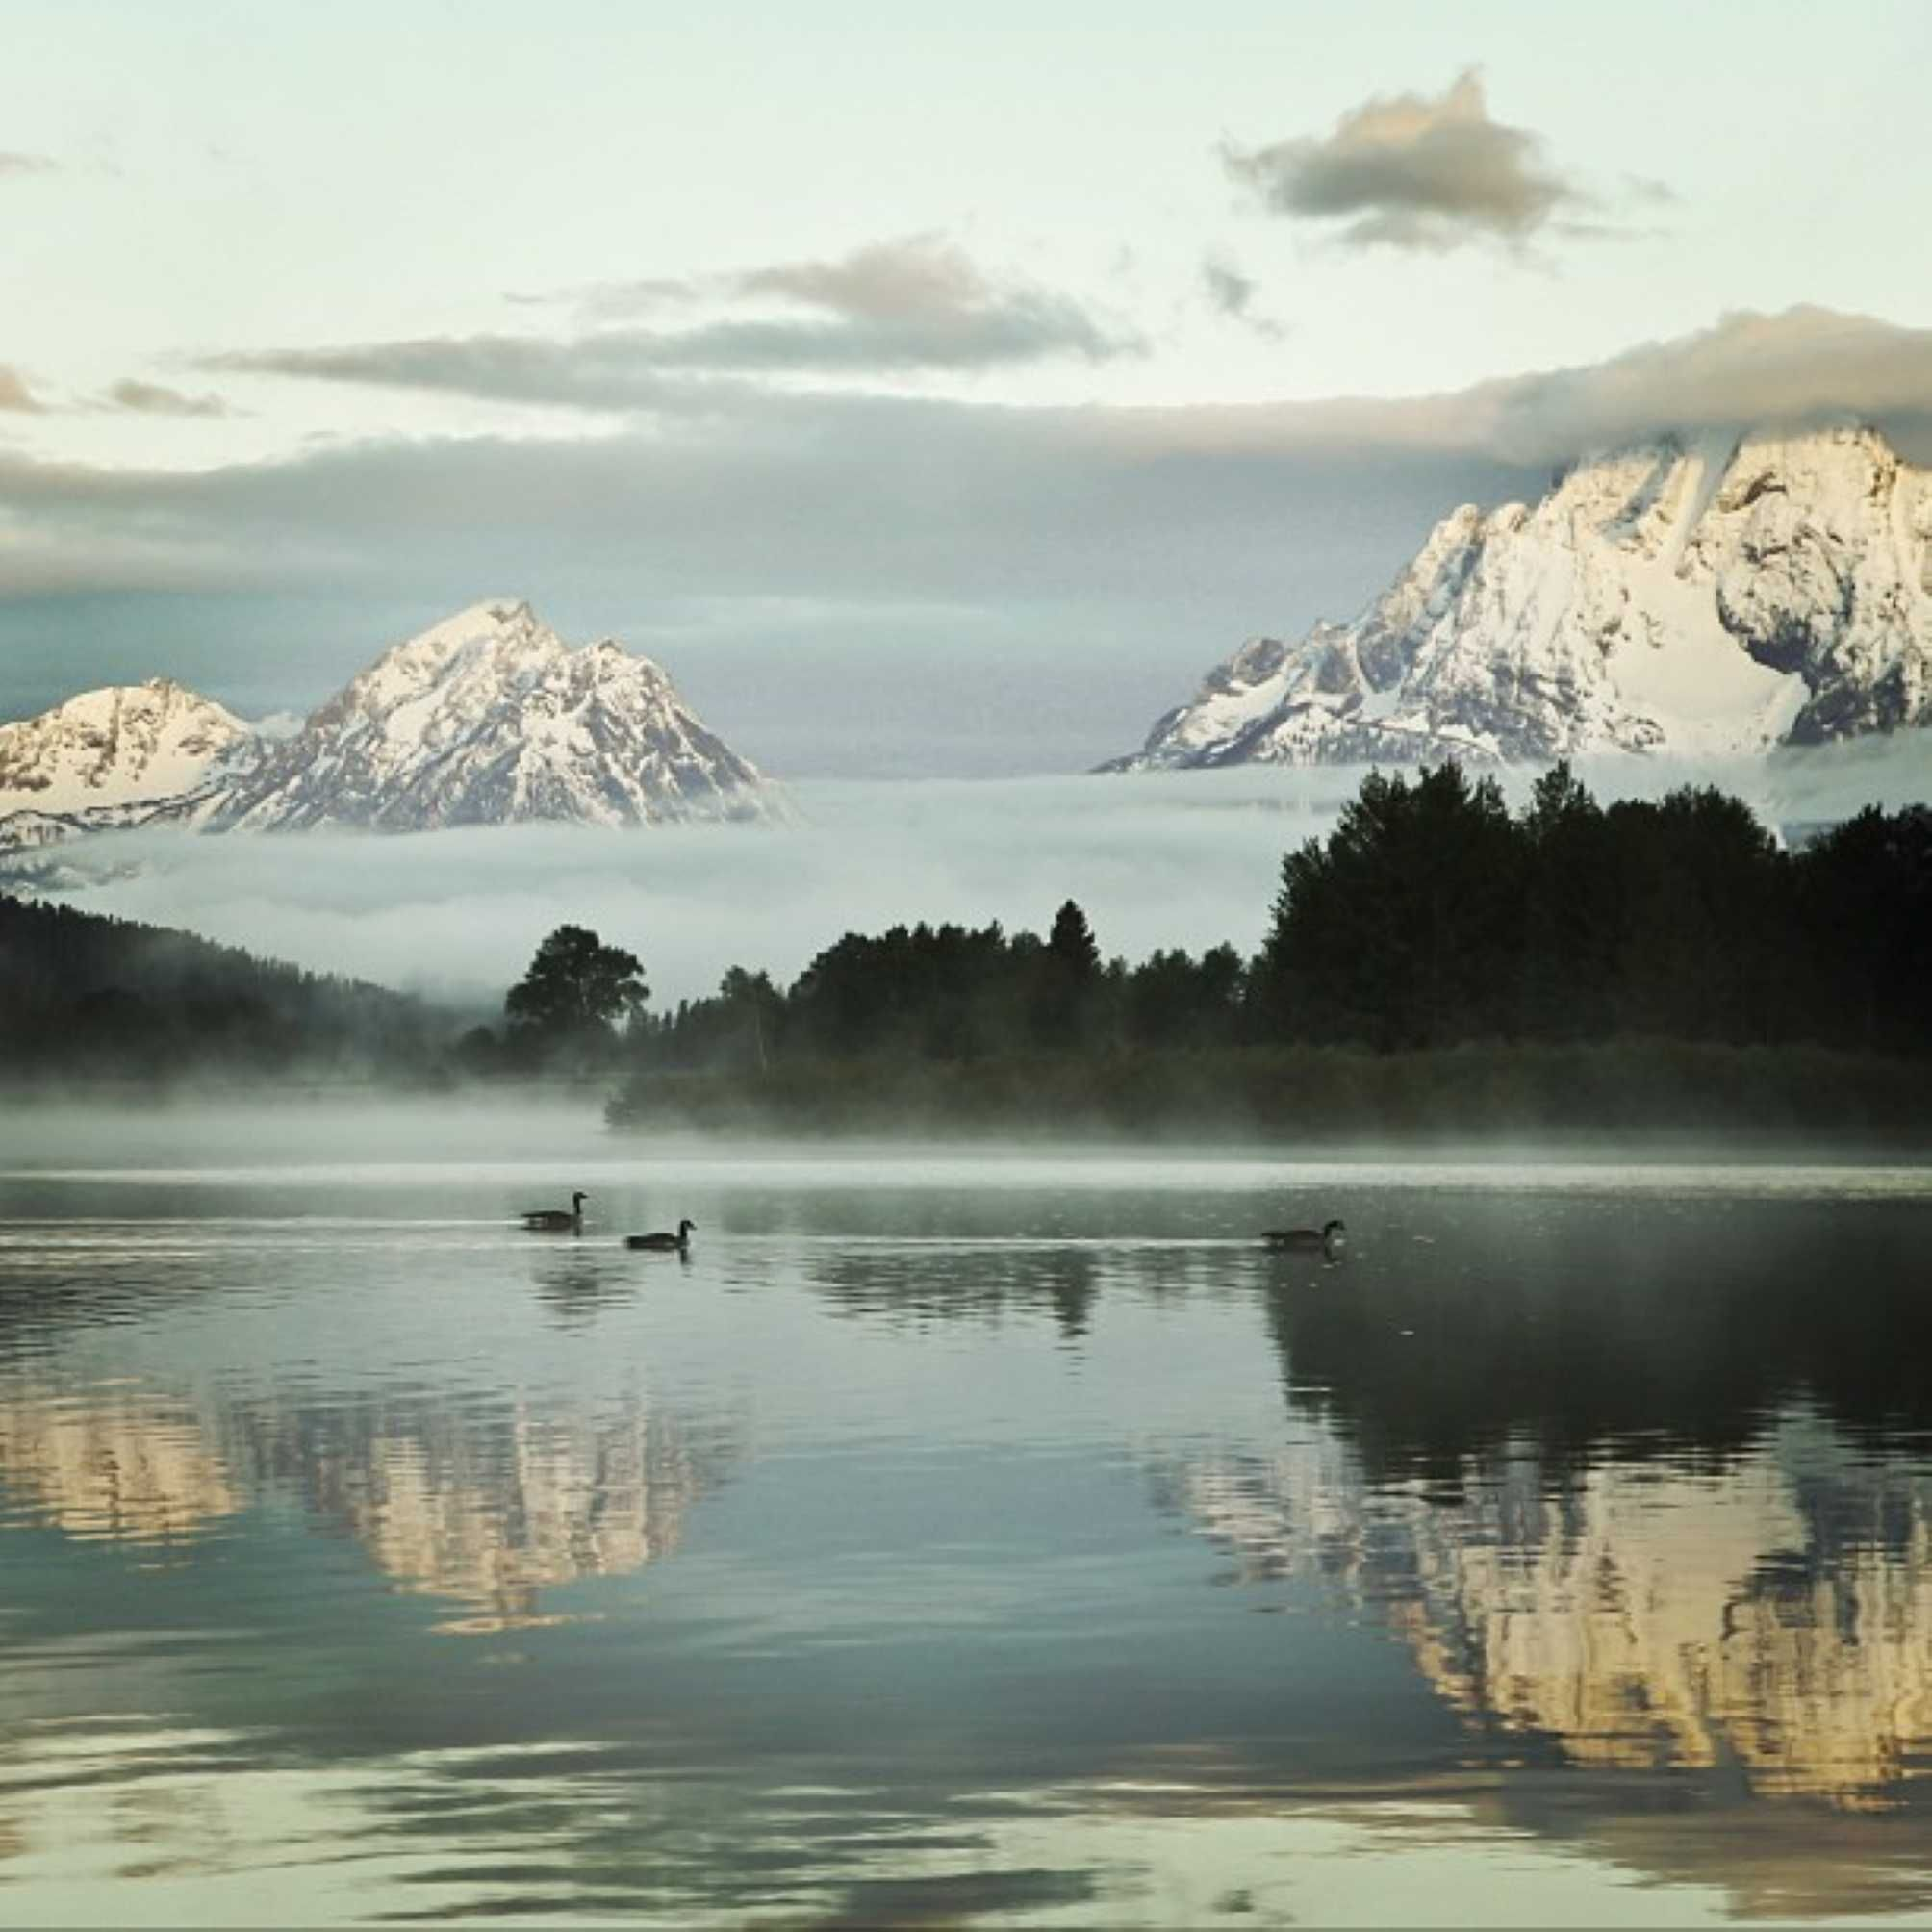 Early morning and waiting for the #sunrise at Oxbow Bend in Grand Teton National Park. Photo: Jantina Tuthill #OxbowBend #GrandTetons #nationalpark #Wyoming #lakes #ducks #mountains #landscape #nature #morning #photography #photooftheday #bestoftheday #instagood #instacool #tetons  Credit U.S. Dept. of Interior